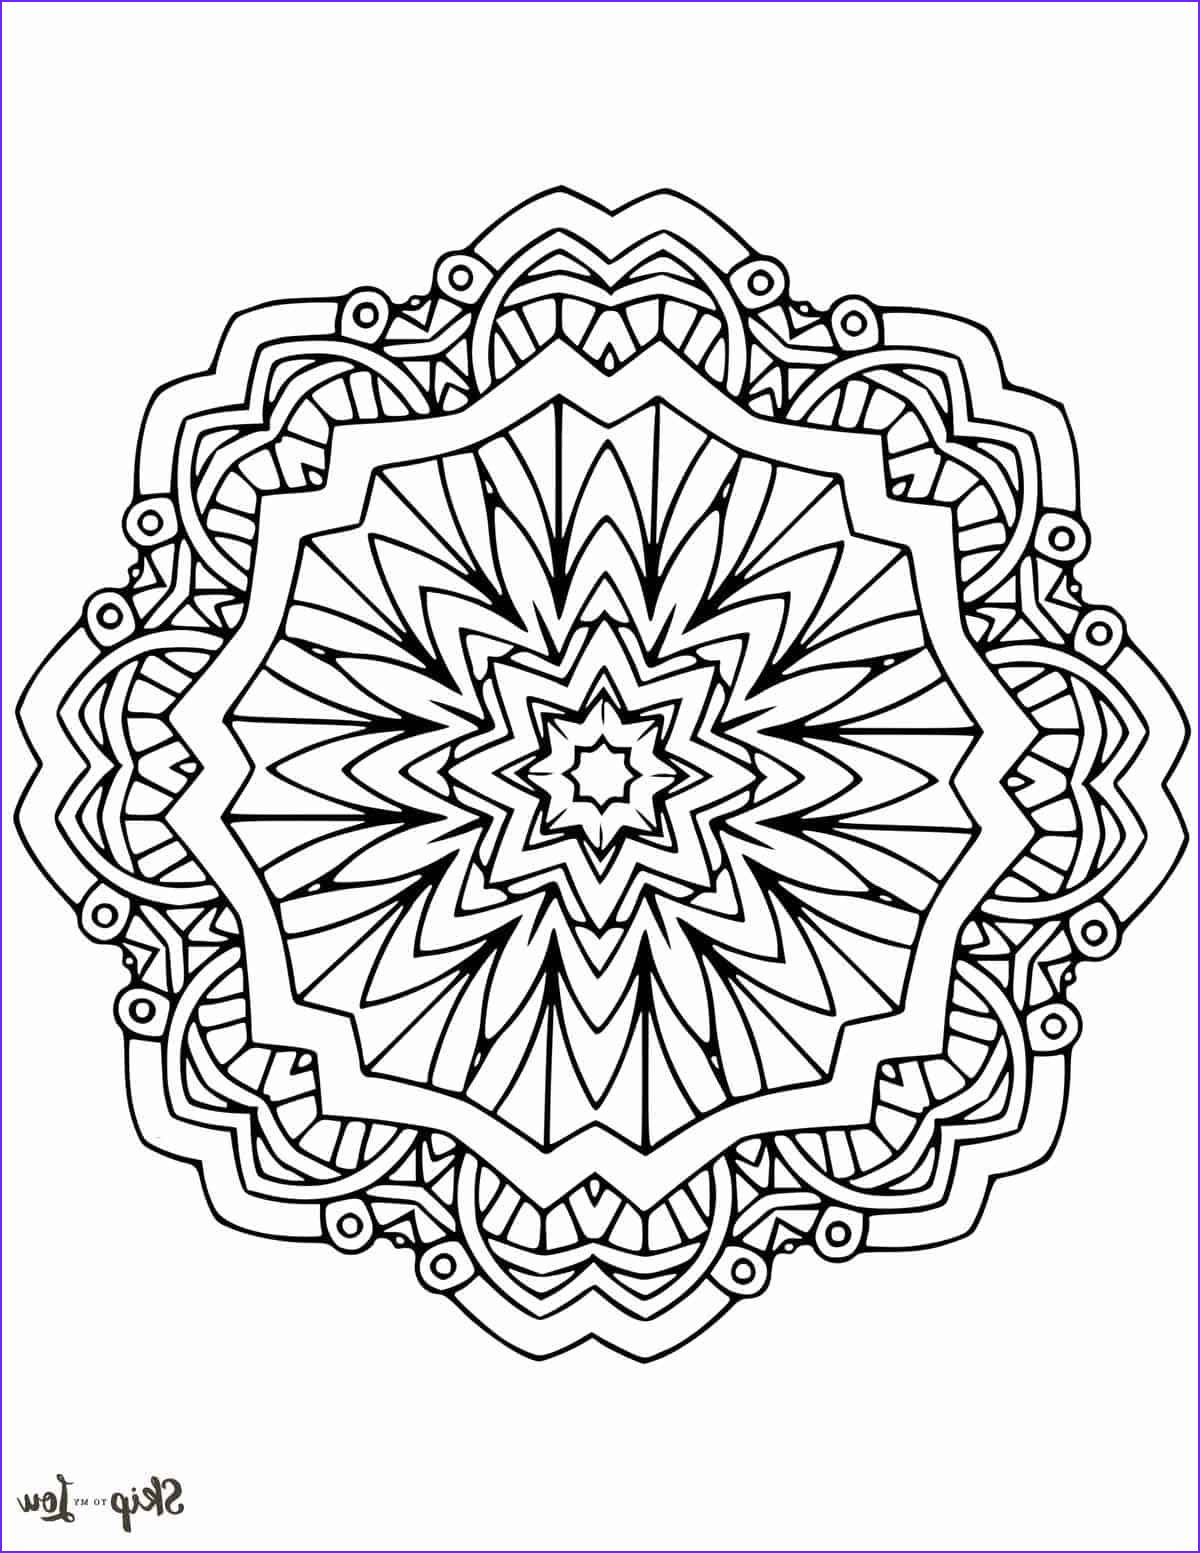 Mandela Coloring Page Best Of Photography Beautiful Free Mandala Coloring Pages